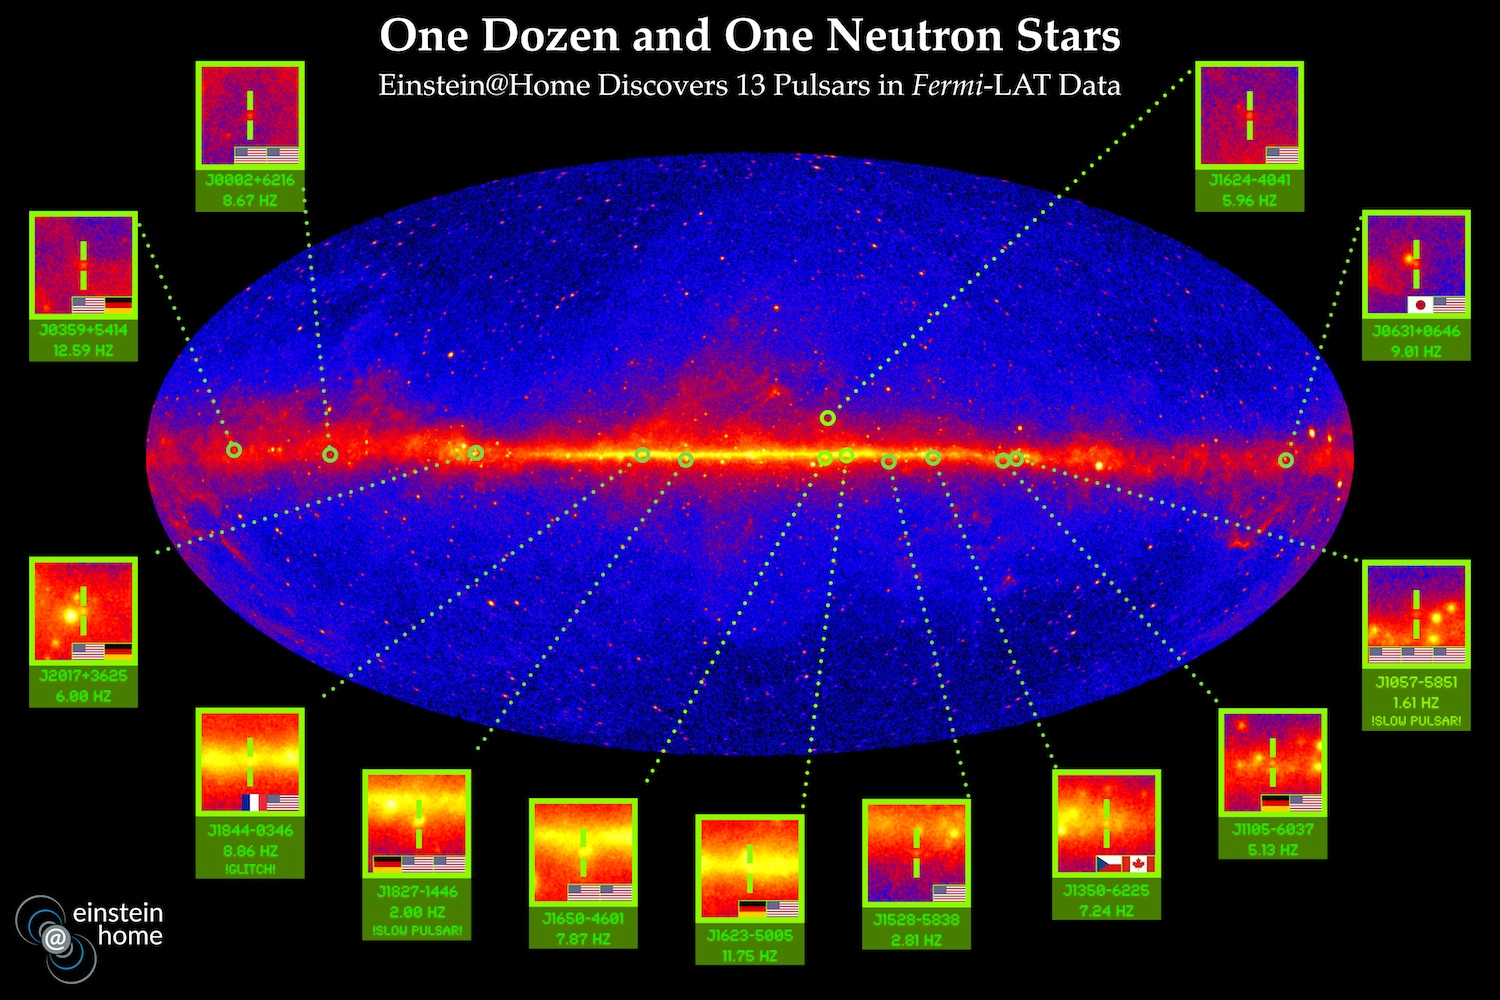 Einstein@Home's global virtual supercomputer discovered 13 pulsars thanks to the support of volunteers around the worlds.  Credit:Knispel/Clark/Max Planck Institute for Gravitational Physics/Nasa/DOE/Fermi LAT Collaboration